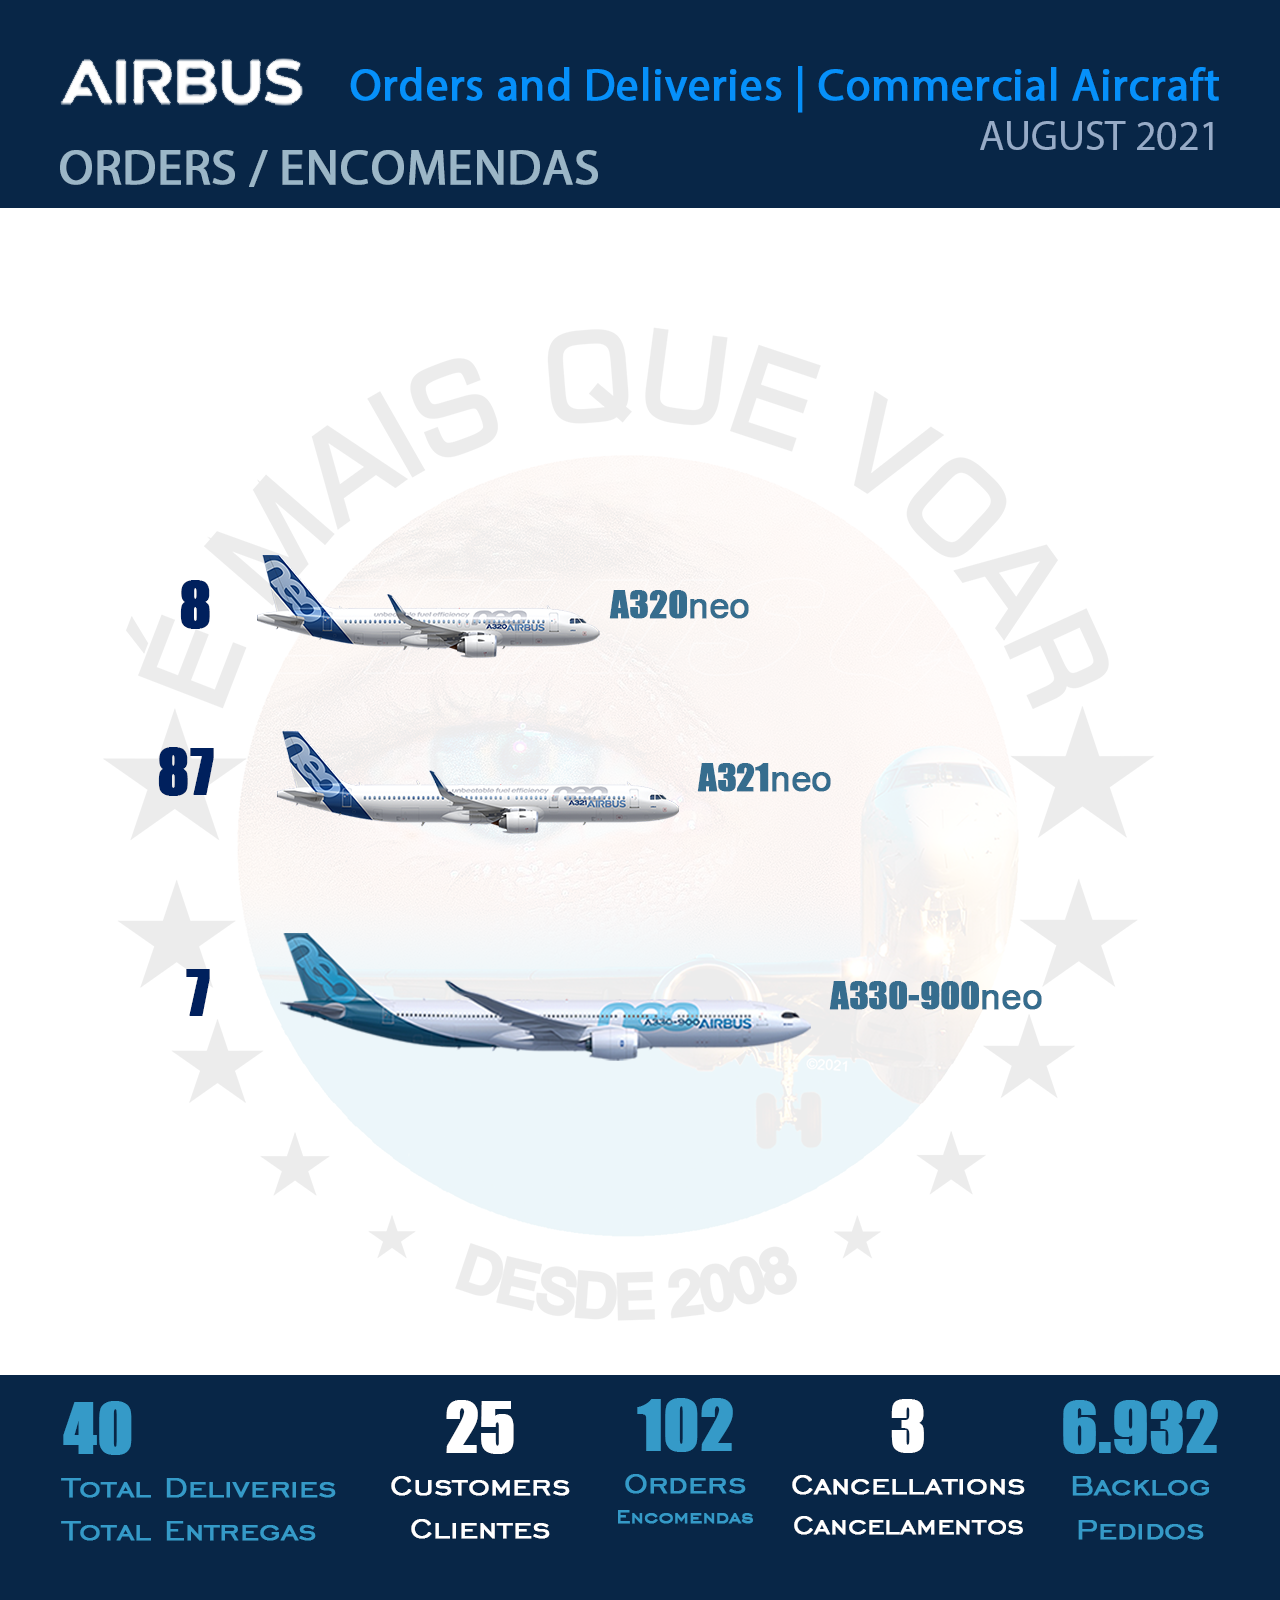 INFOGRAPHIC: Orders and Deliveries Airbus Commercial Aircraft – August 2021